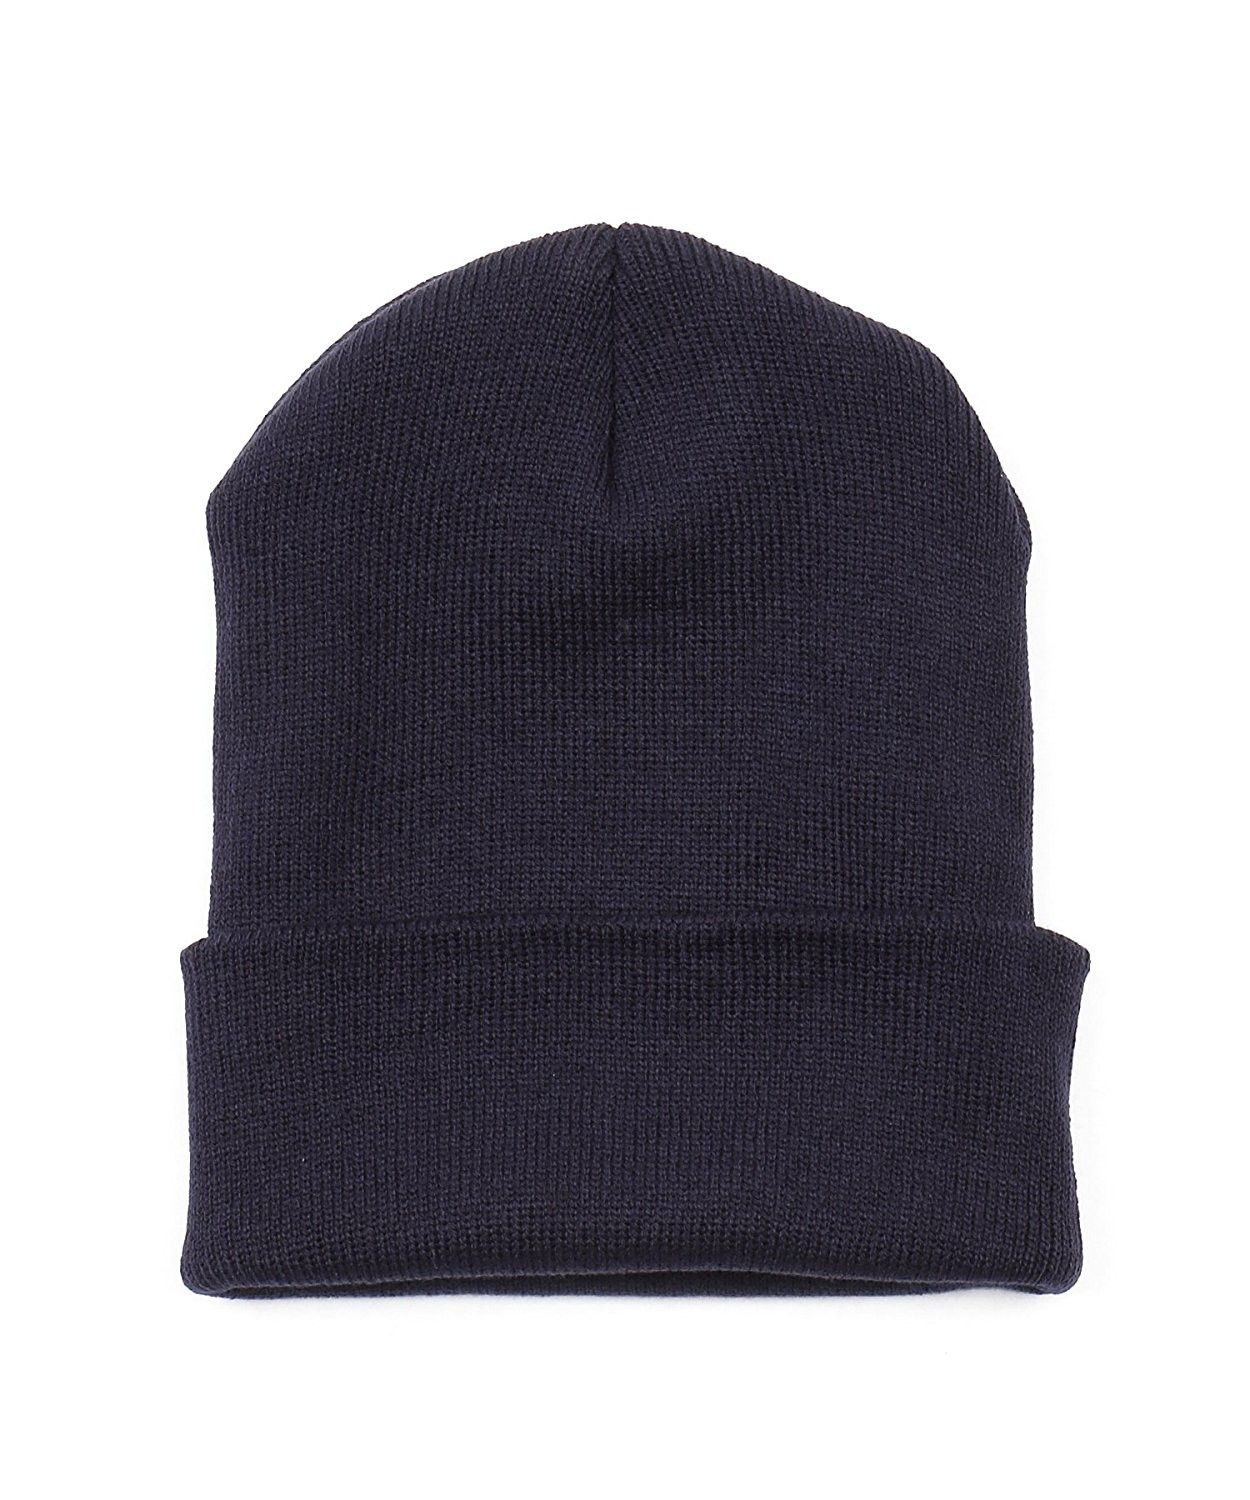 e6f14292242 Thick Plain knit Beanie Slouchy Cuff Toboggan Daily Hat Soft Unisex ...